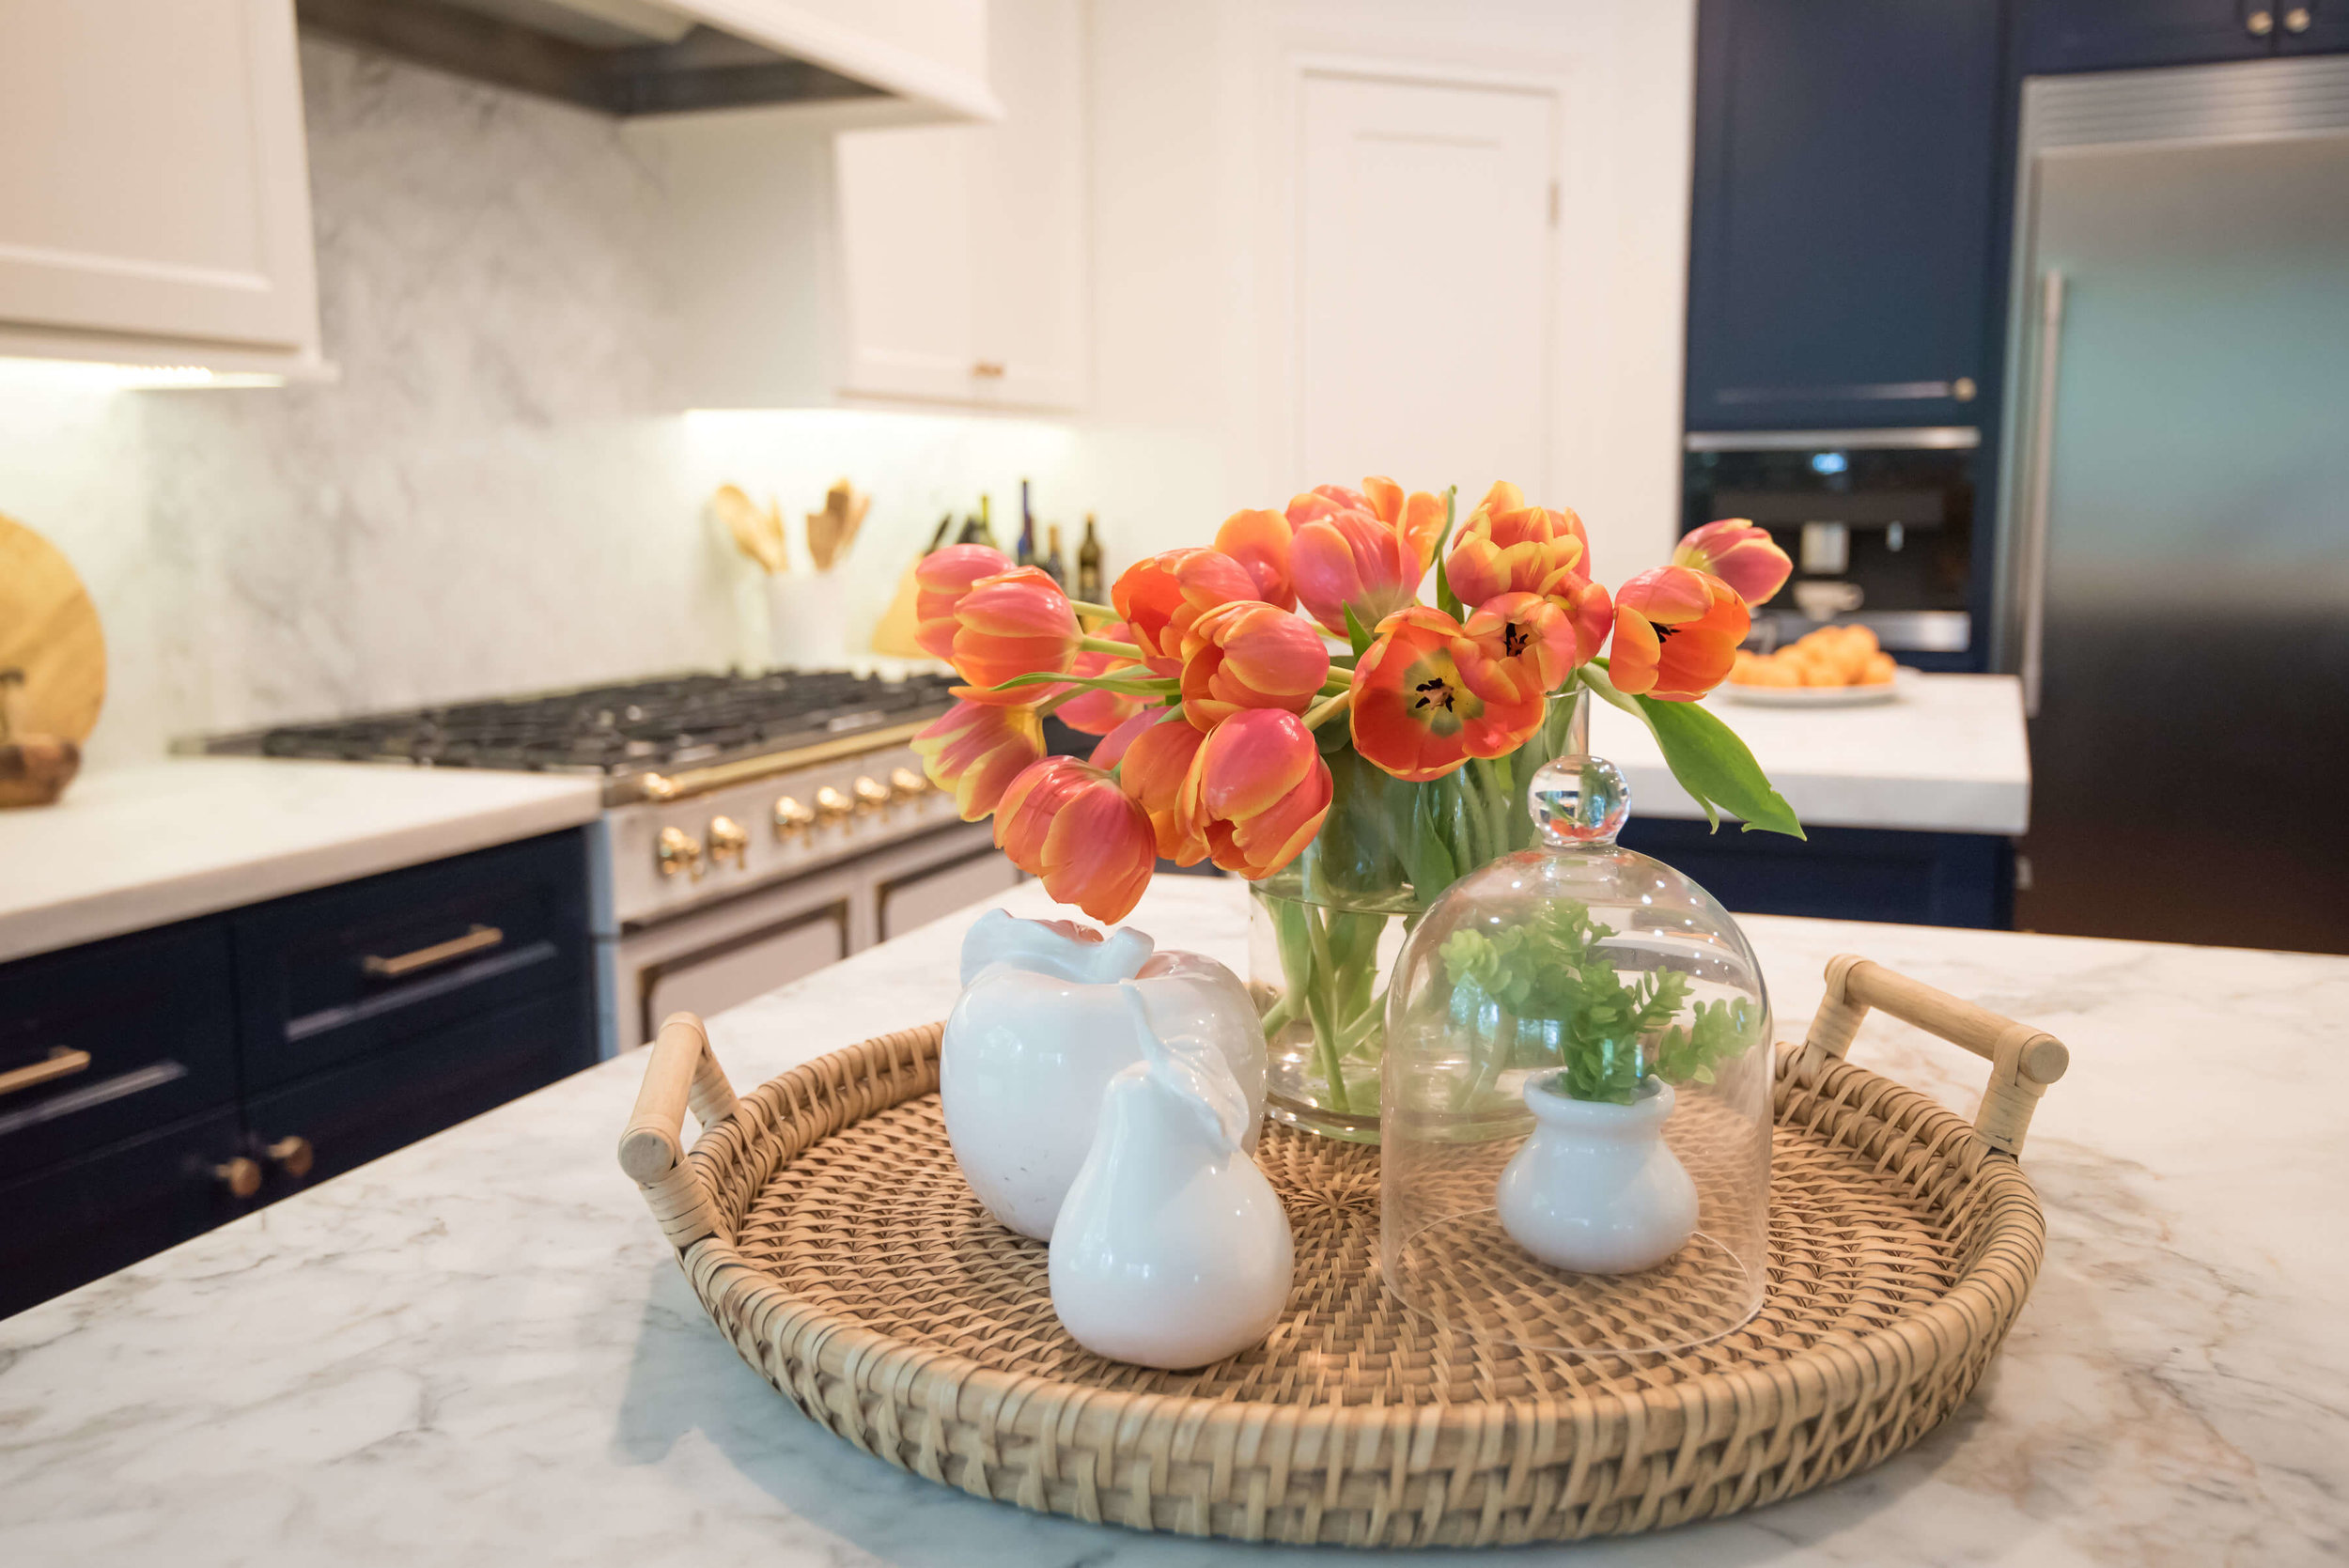 Kitchen Styling Tips From Some Talented Interior Design